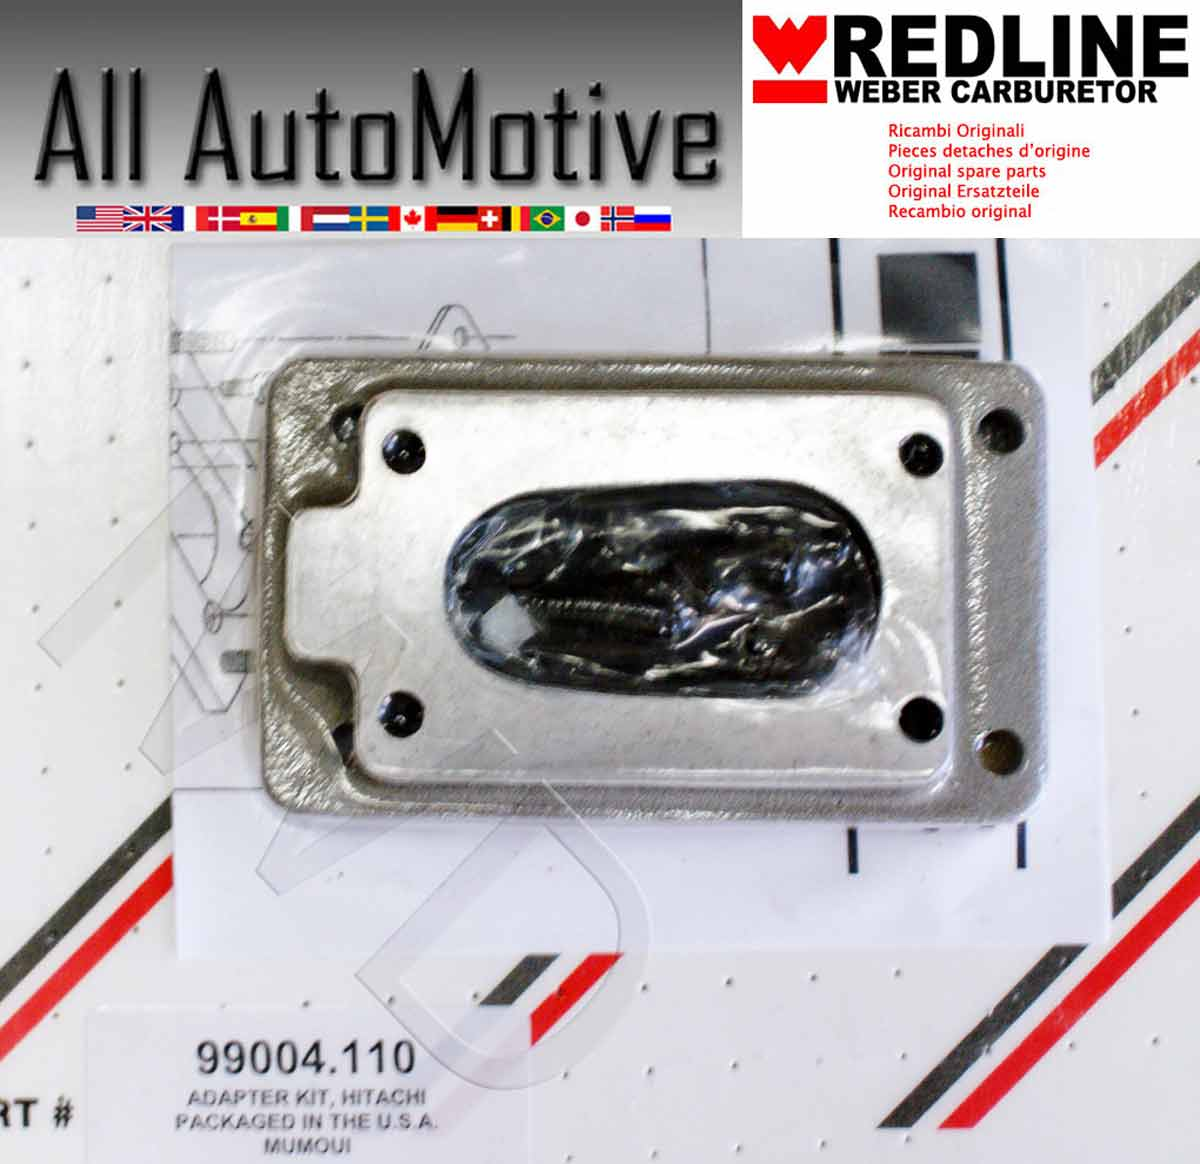 Adapter Plate For Installing Weber Carb Subaru Ea81 Ohv 1600 1800 Wiring Diagram Does Not Apply